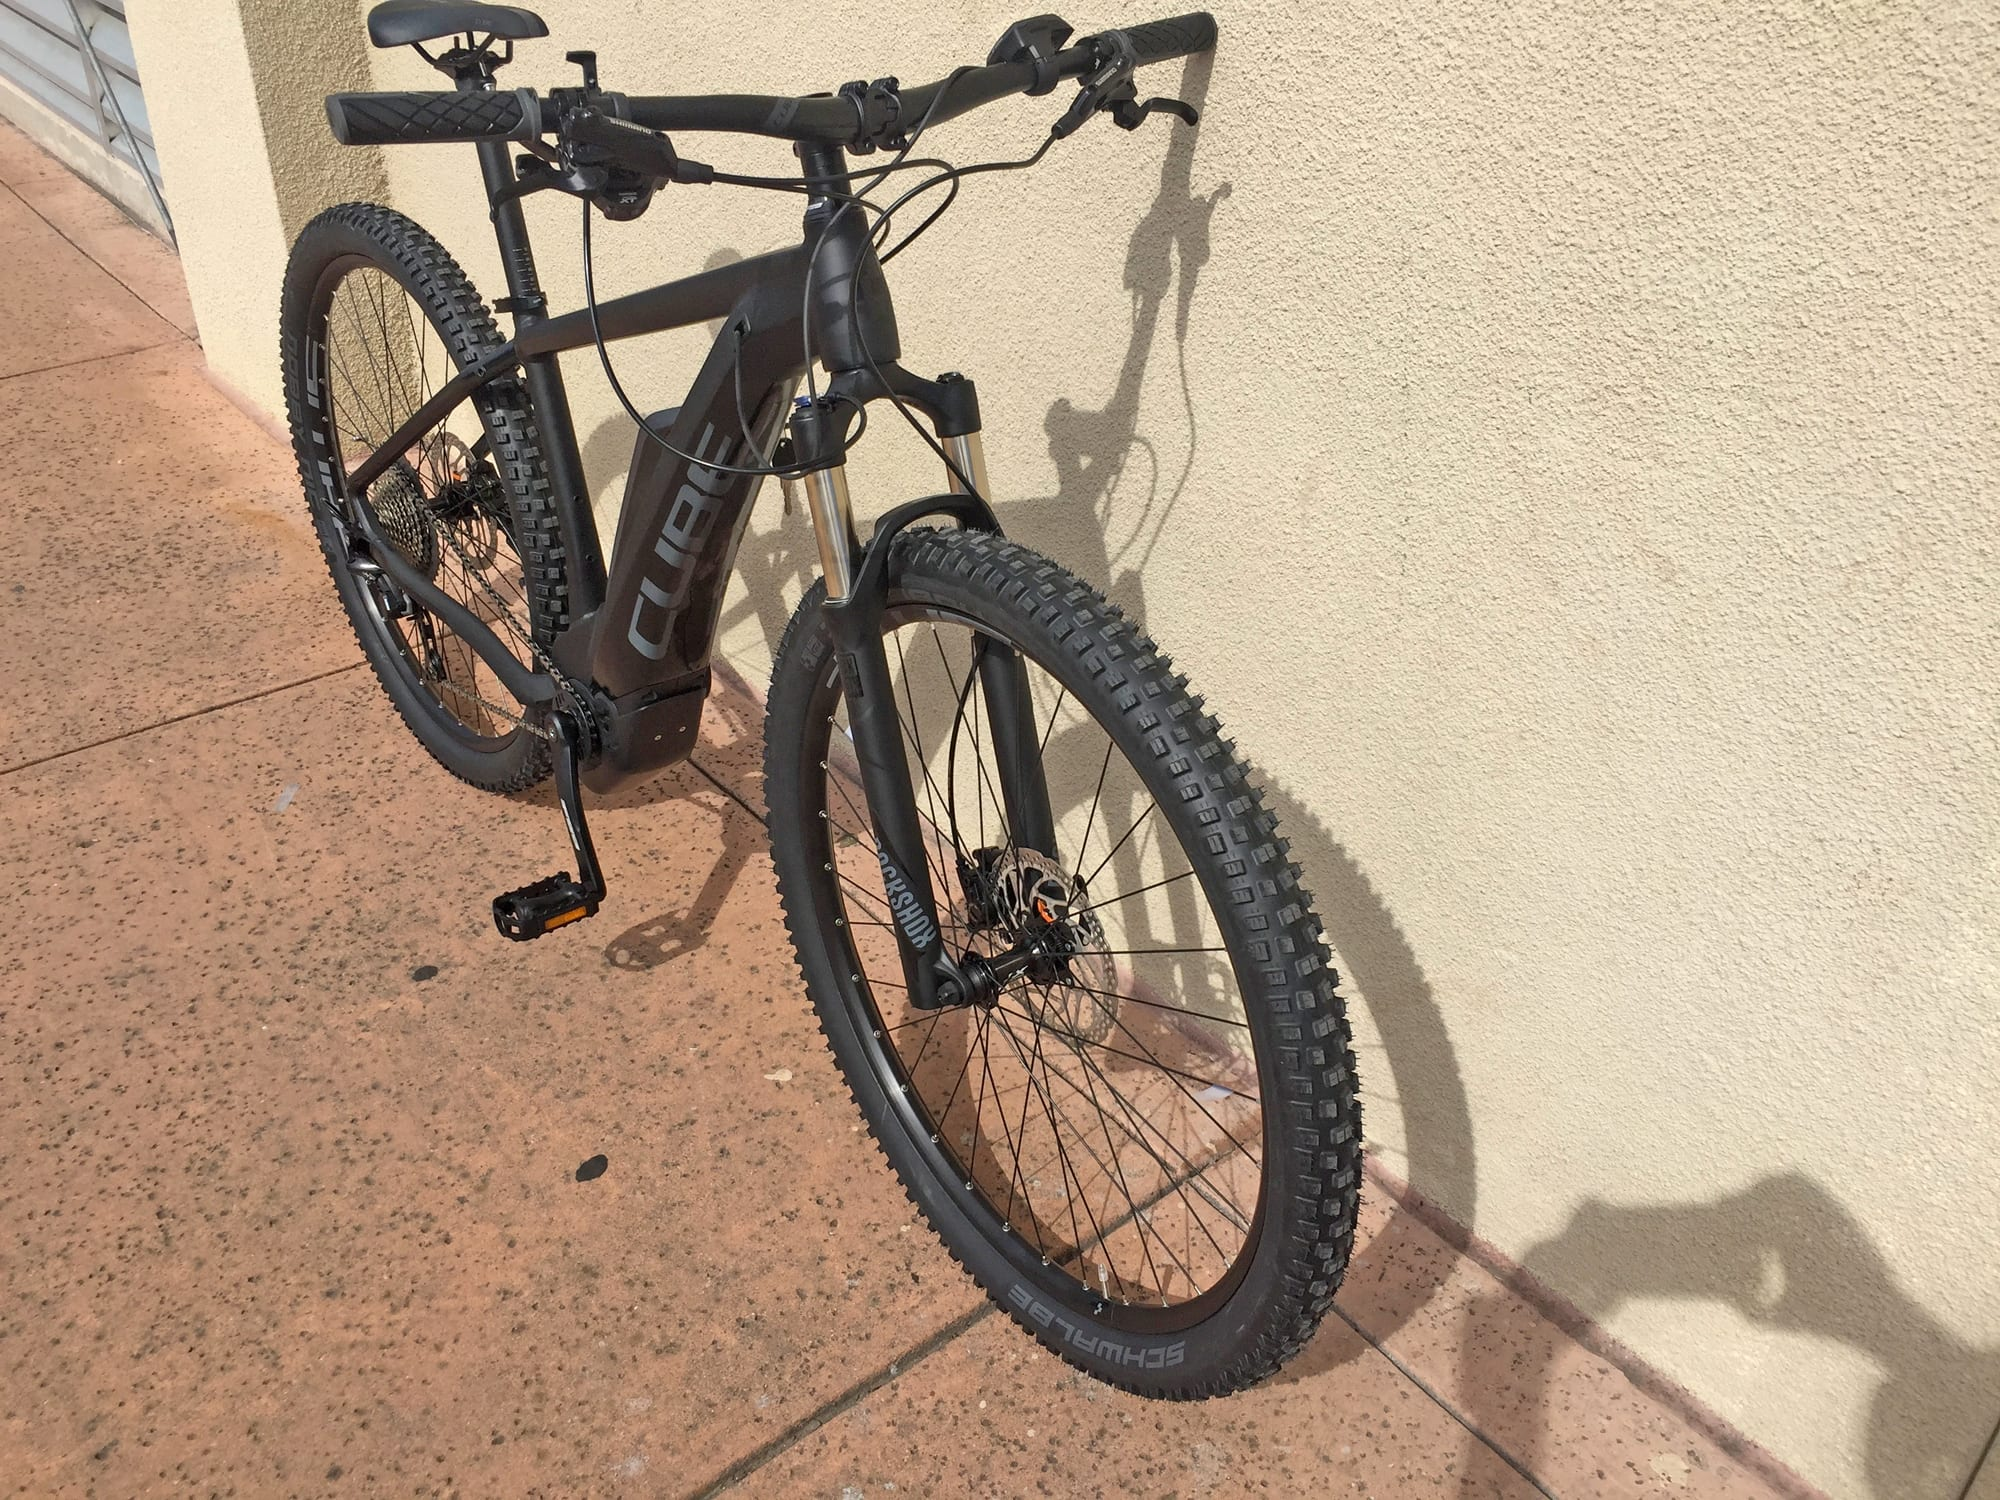 Cube mountain bike serial number | How to find a bicycle